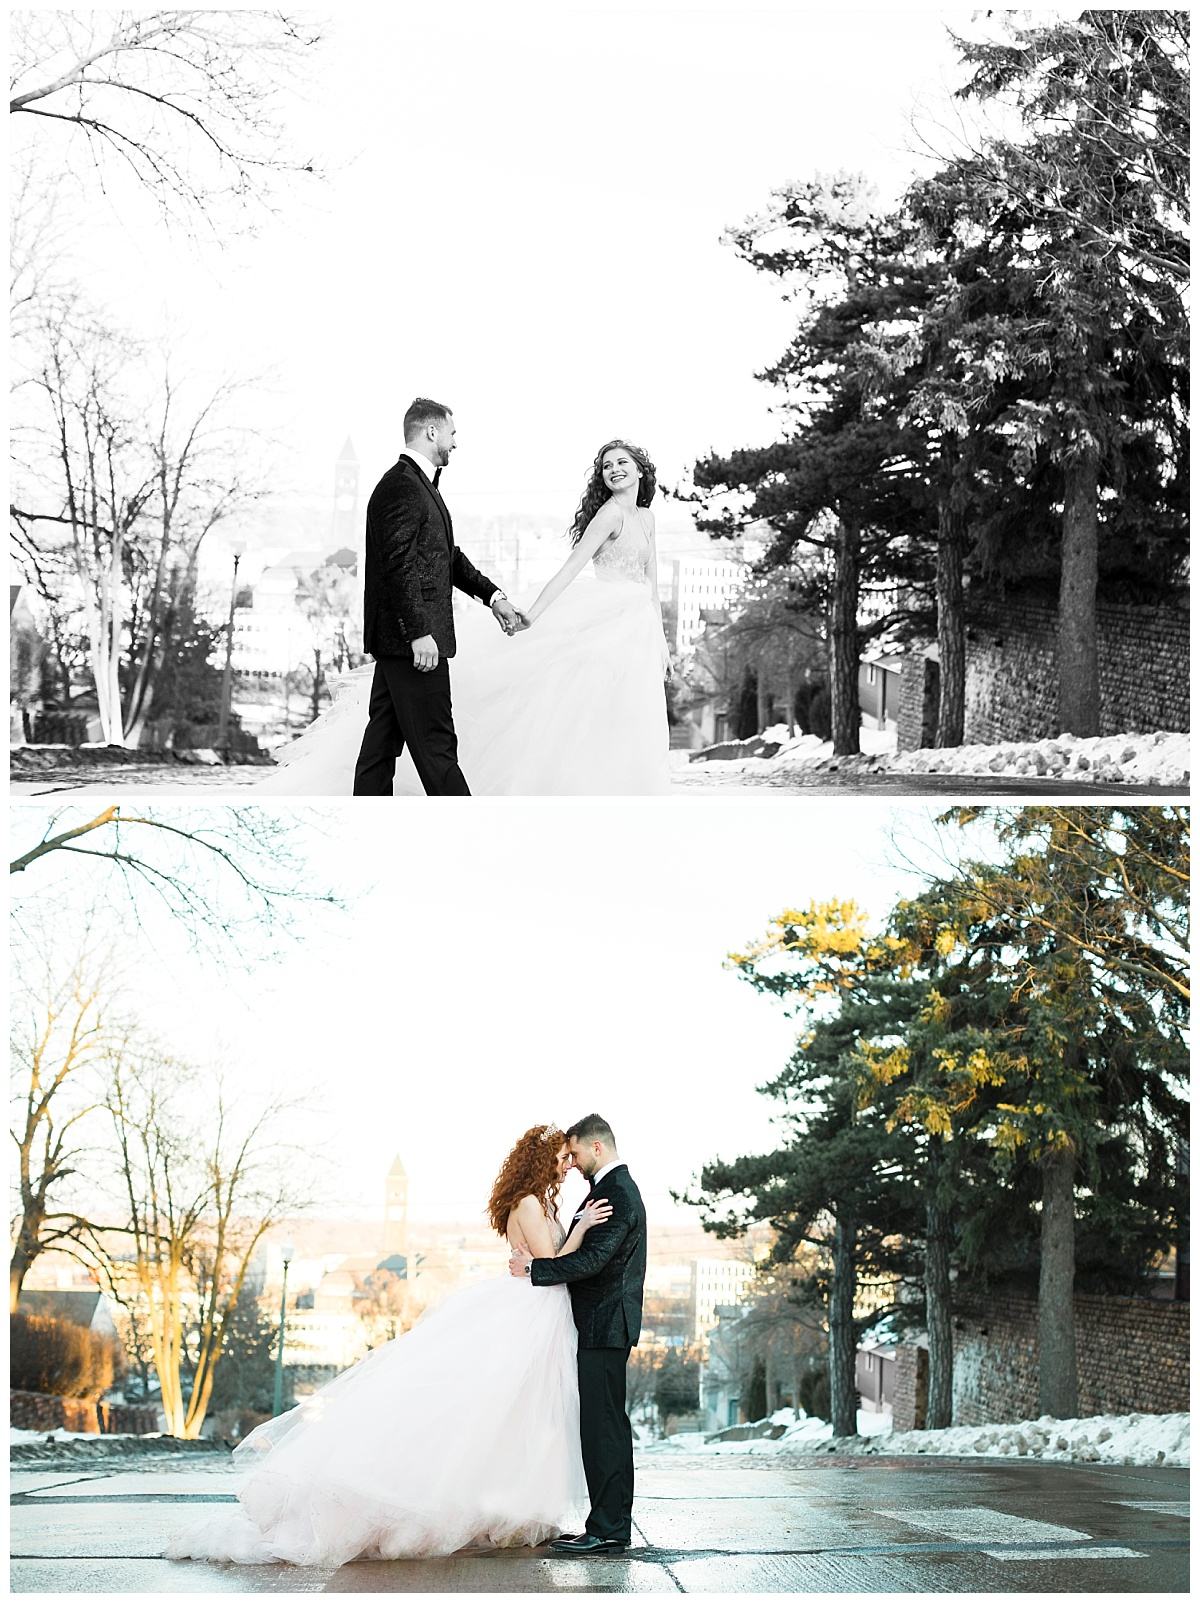 SiouxFallsWedding_Photographer_BethanyMelvinPhotography37.jpg